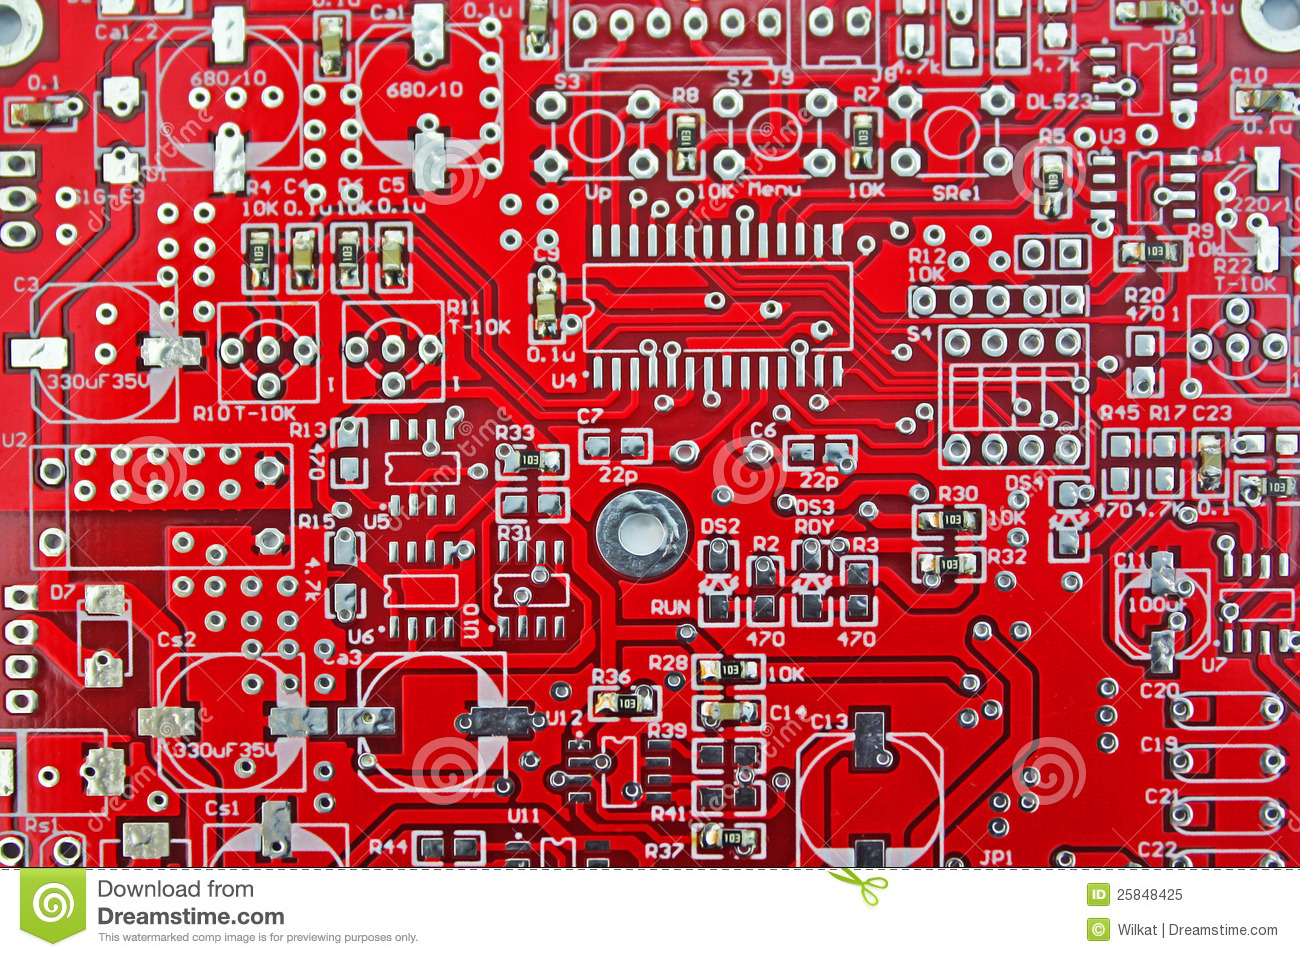 Print Circuit Board Pcb Stock Image Of Hold 25848425 Stockfoto Printed Used In Industrial Electronic Is As Important Components Circuits This The Signal Power Various Devices